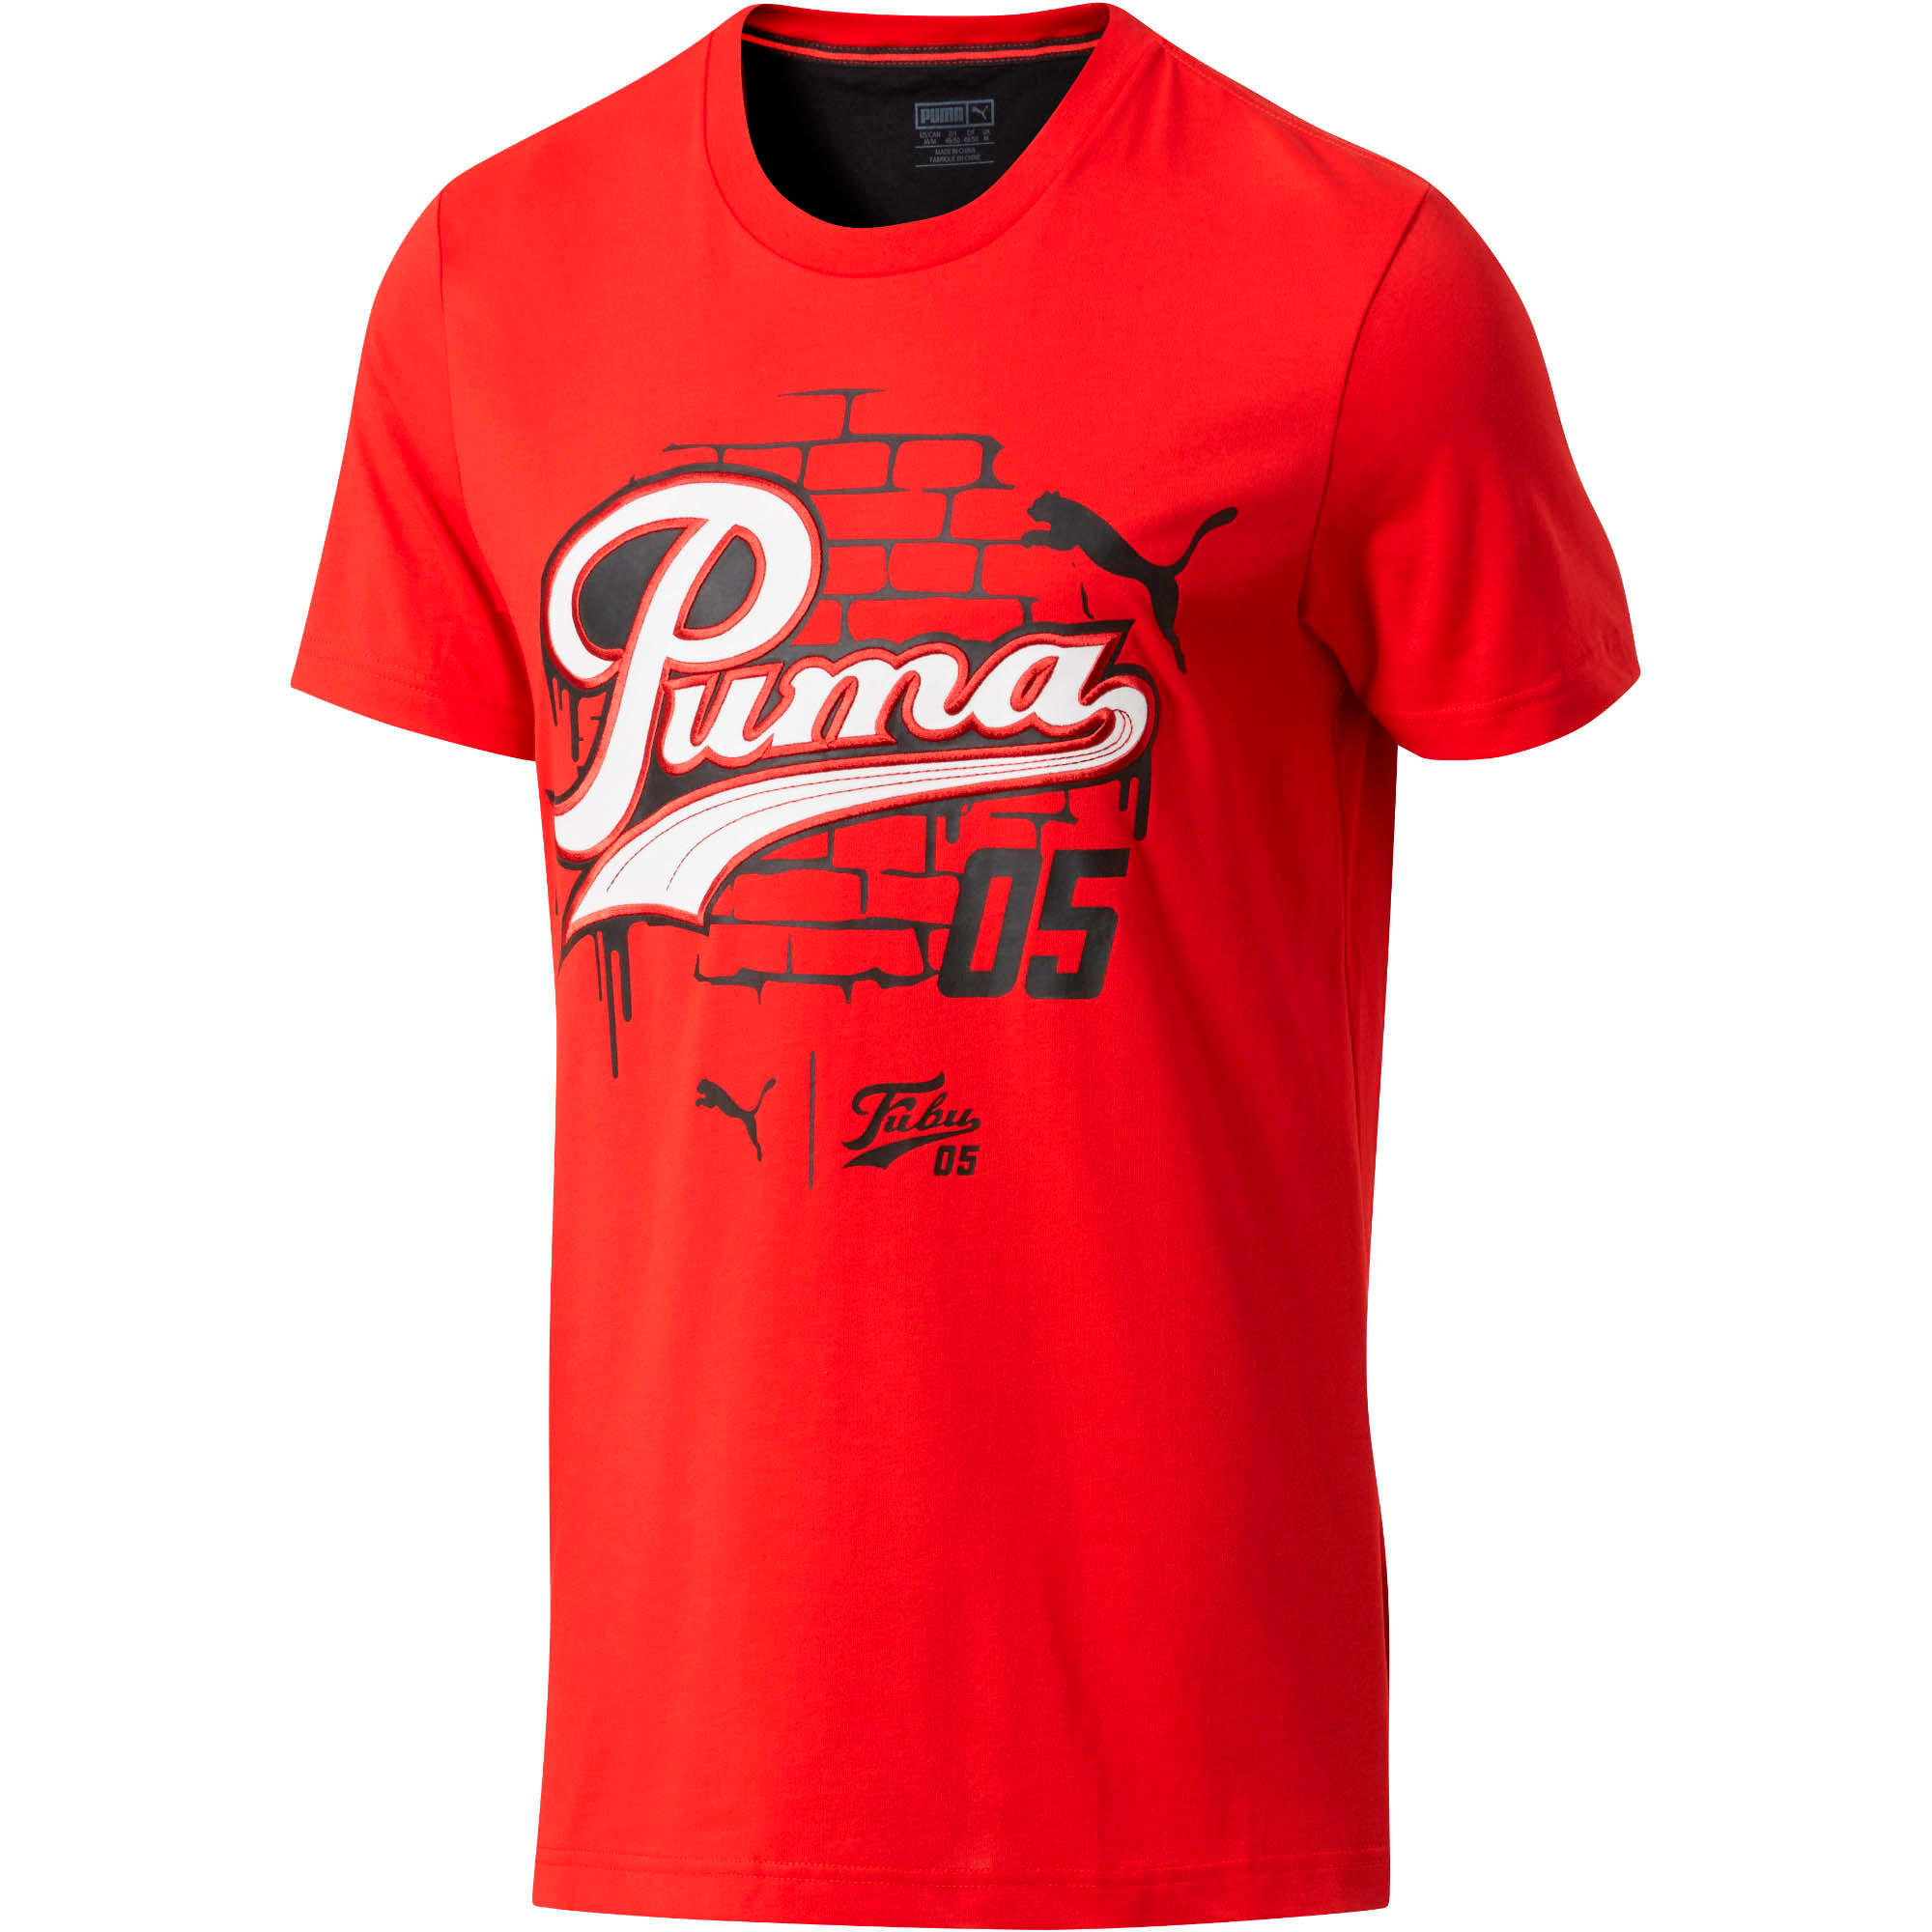 PUMA Graphic T-Shirt, High Risk Red, large